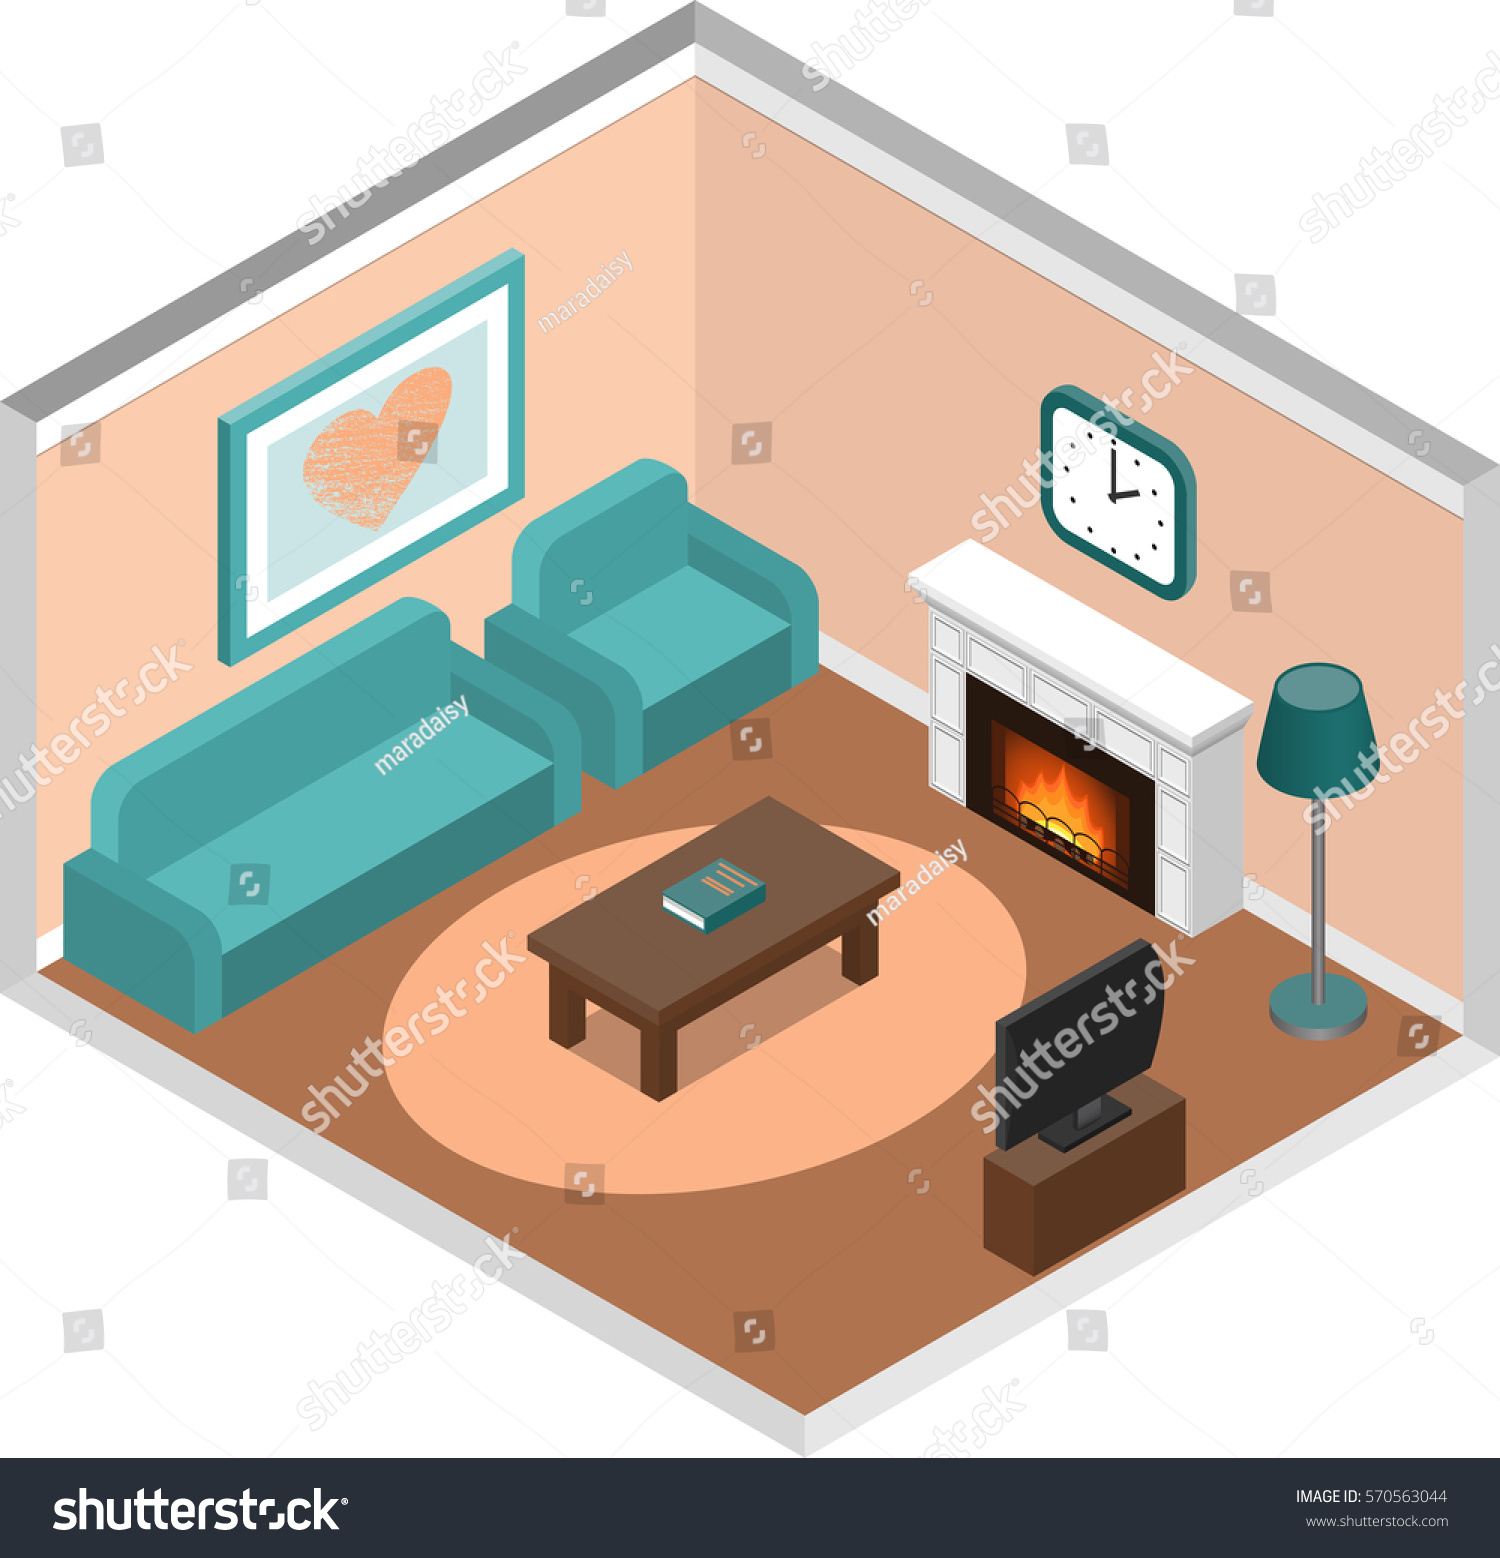 Living Room Interior In Isometric Style. House Design With Fireplace And  Furniture. Vector 3D